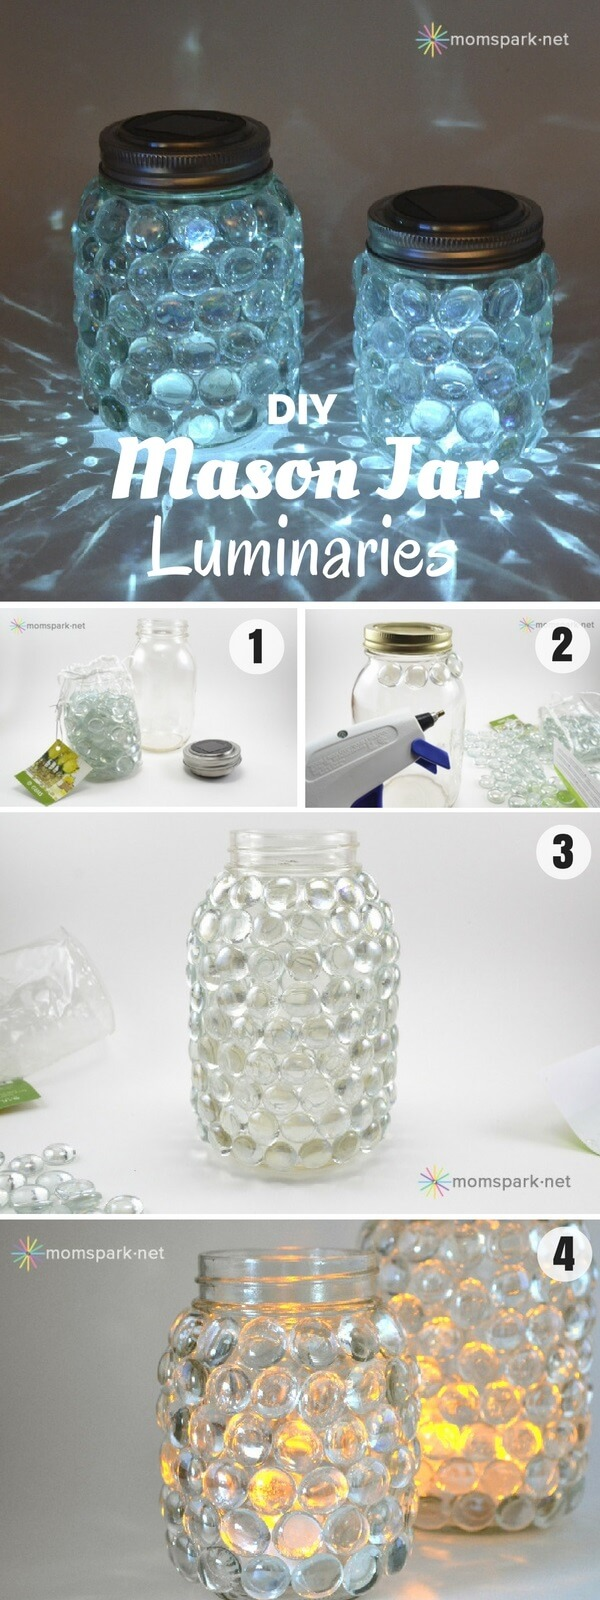 DIY Mason Jar Luminaries | Creative DIY Garden Lantern Ideas - FarmFoodFamily.com